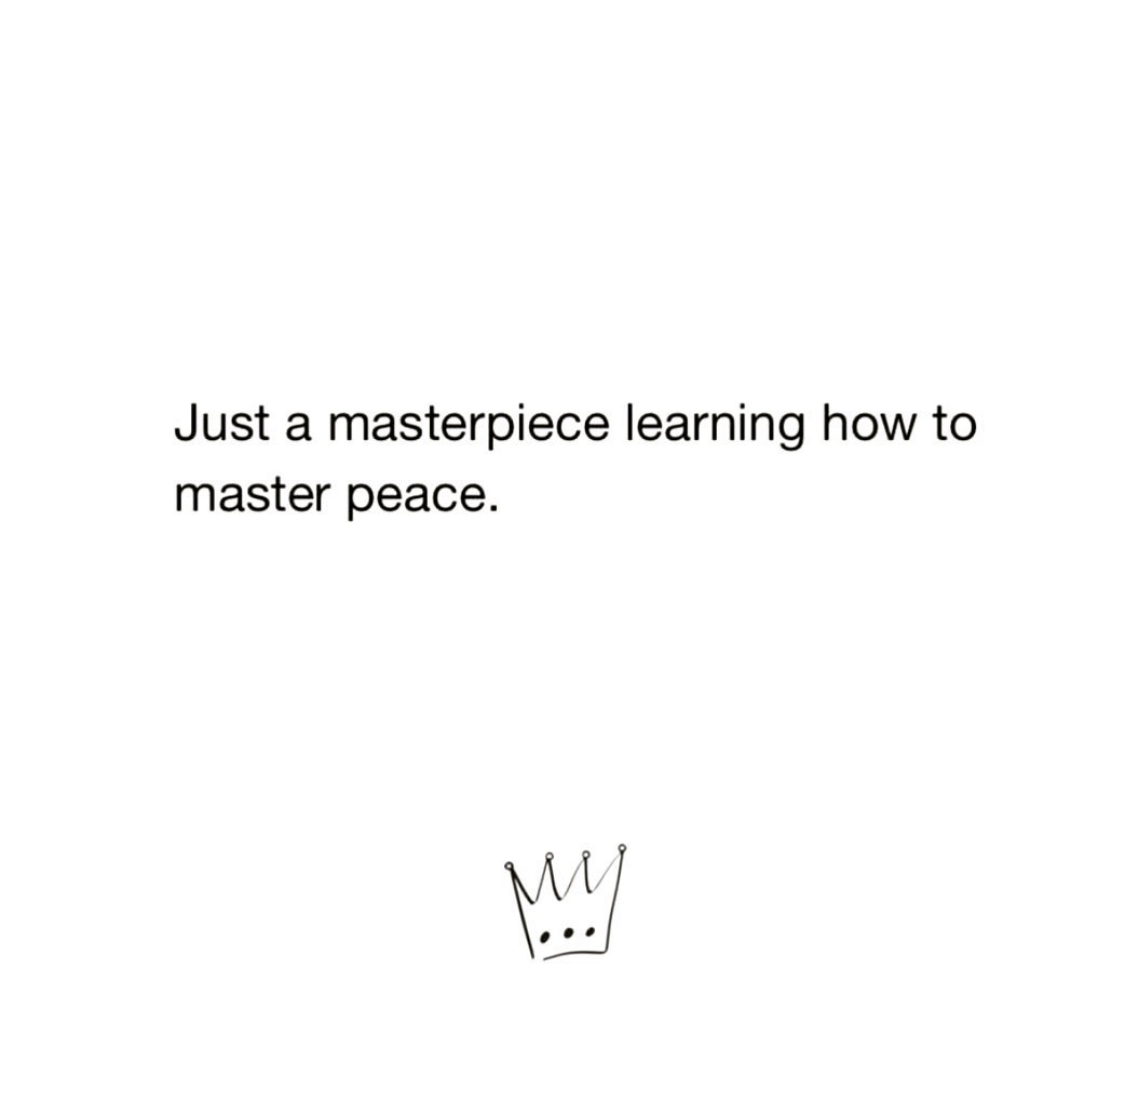 Learn how to master peace   #emotionalintelligence #mentalhealth<br>http://pic.twitter.com/zHYR2m6tD6